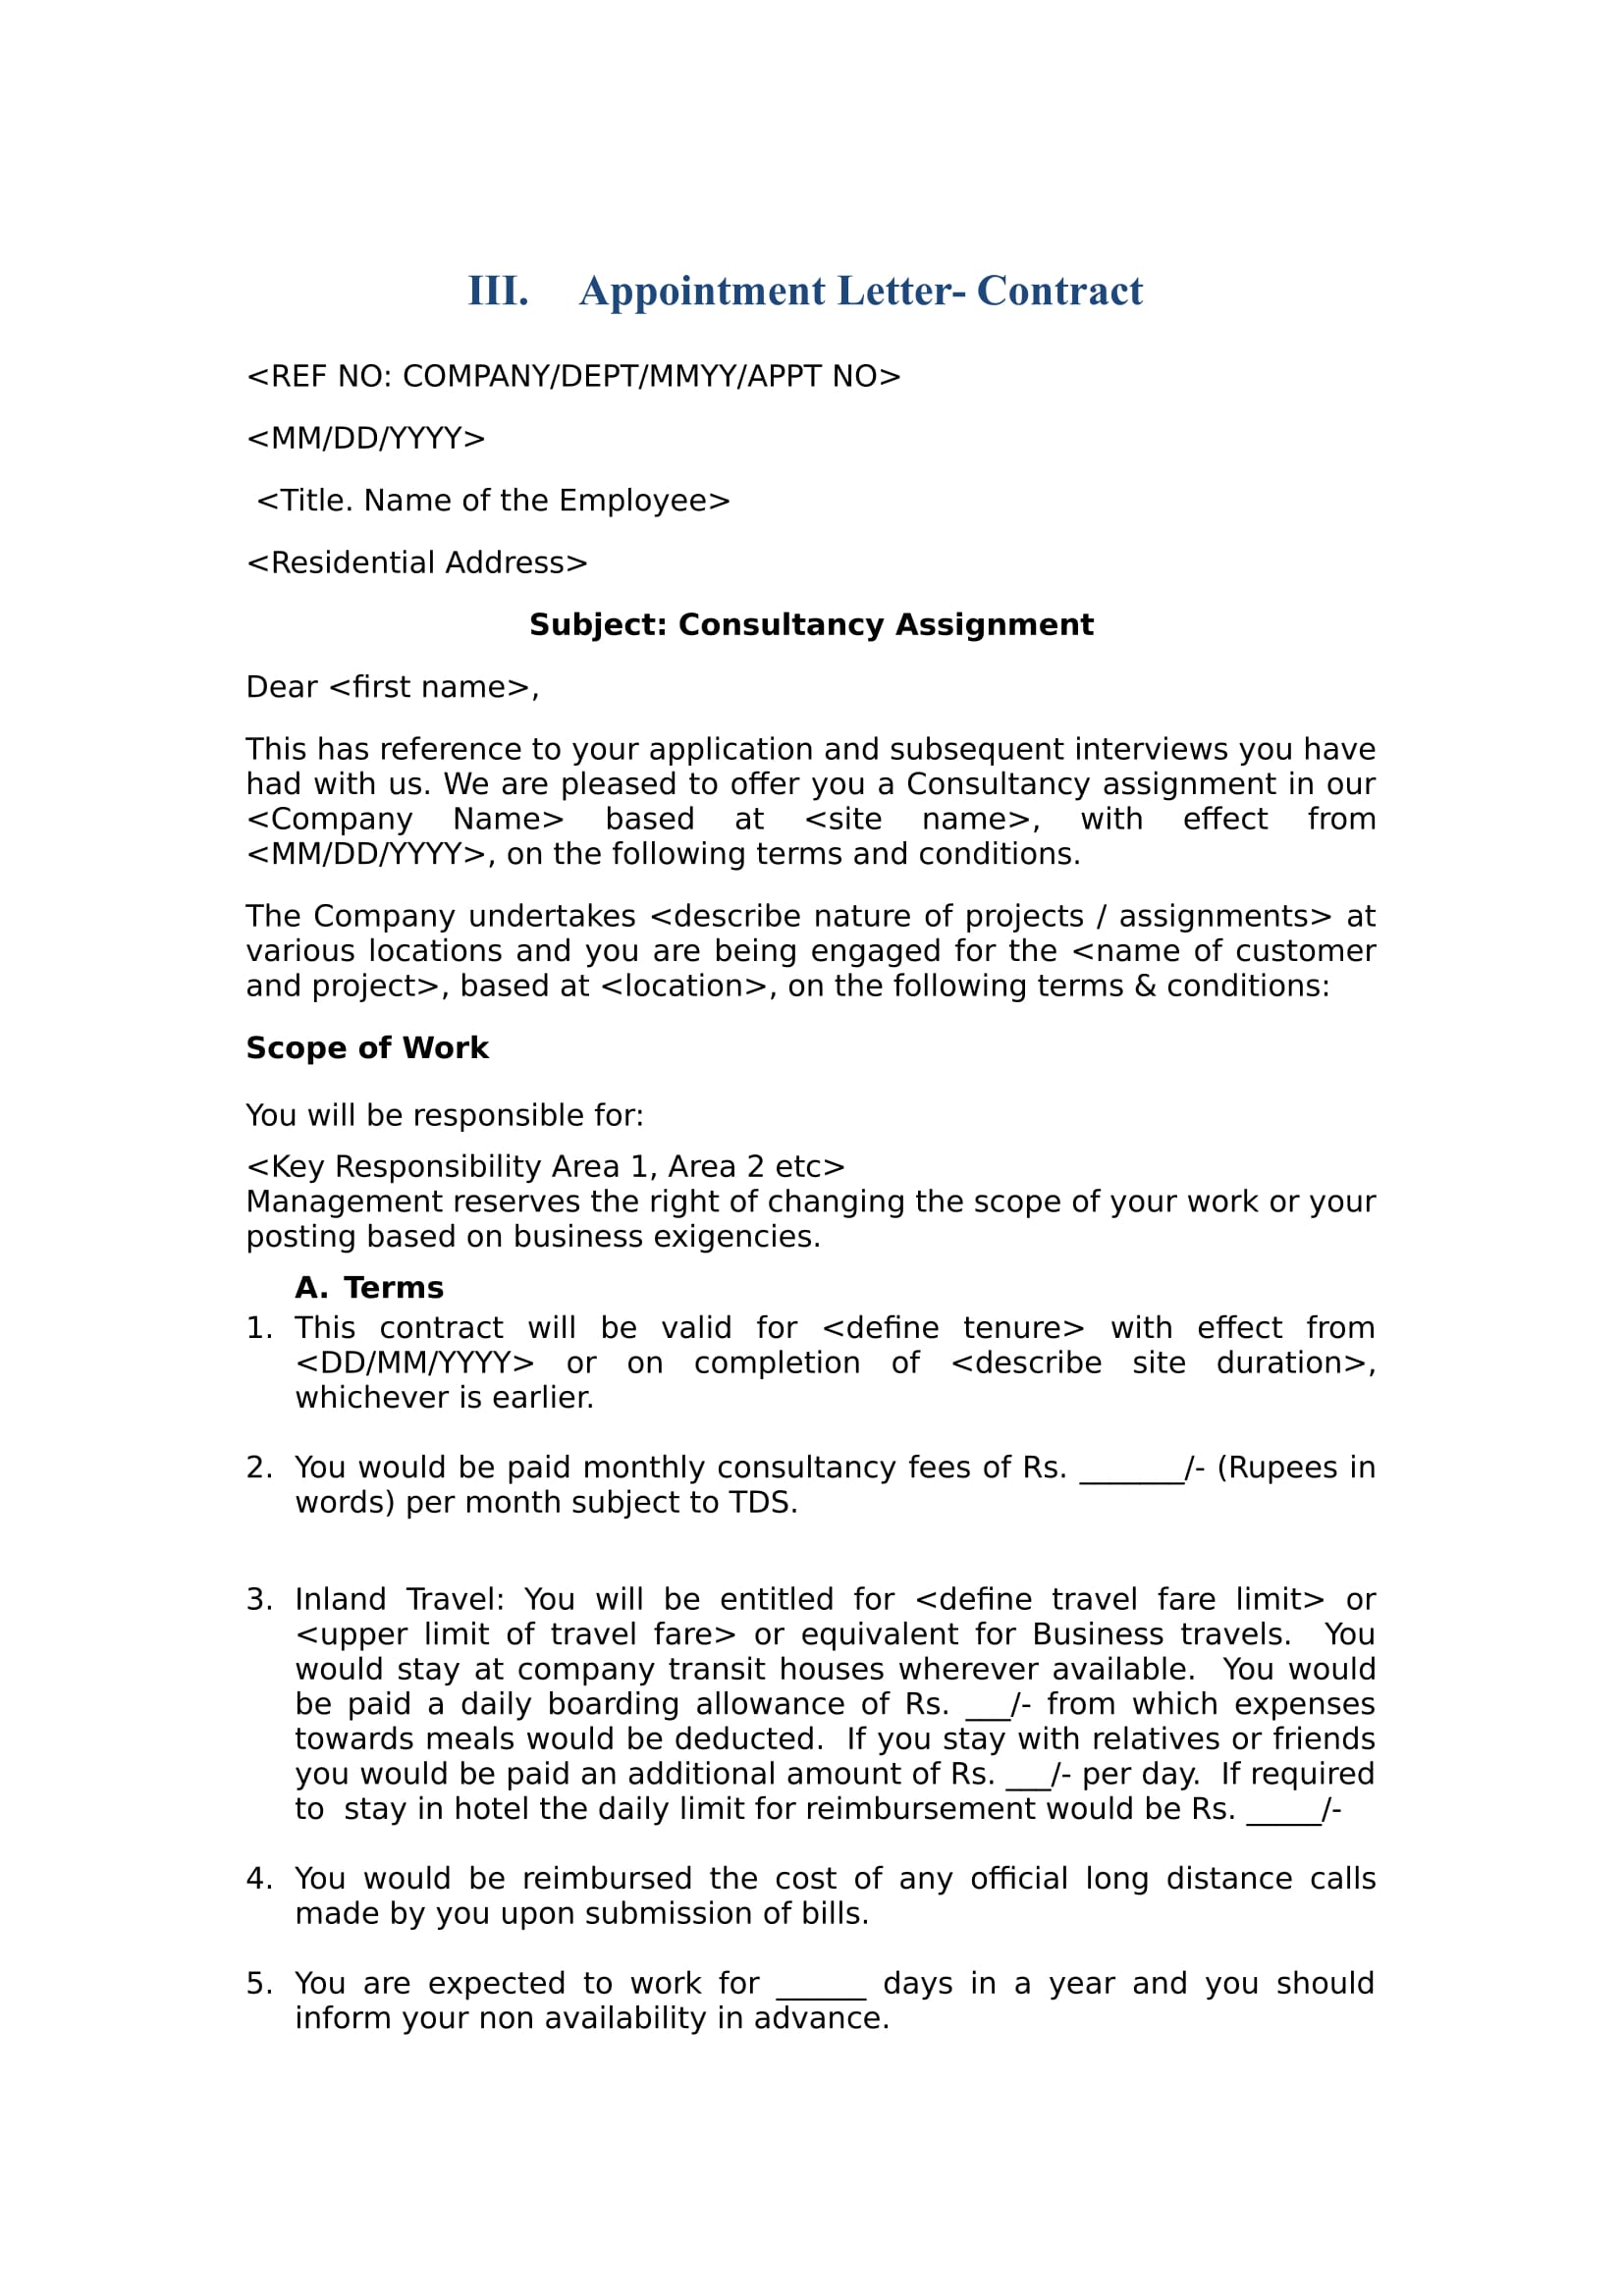 contract appoinment letter